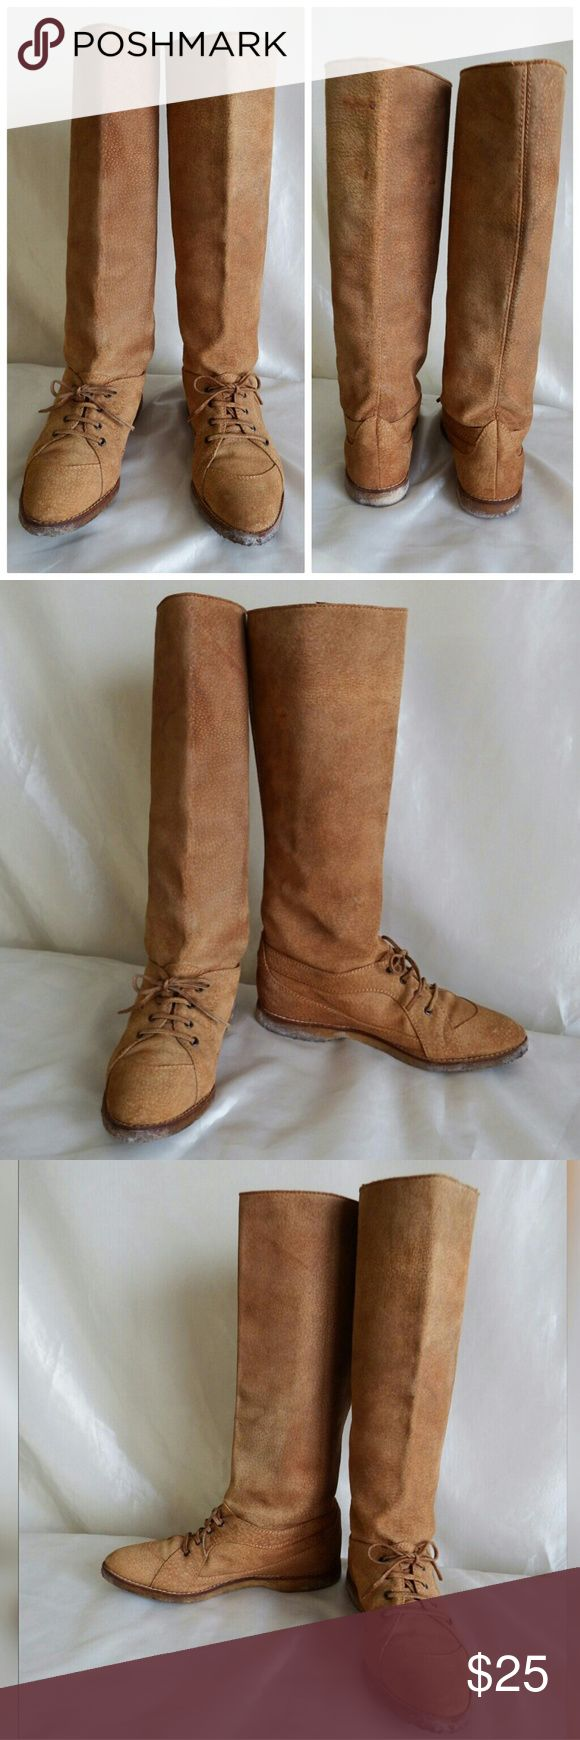 """Maude Frizon - Vintage Suede Equestrian Boots Vintage suede leather equestrian boots. Pull-on style with lace-up front. 15"""" high /14"""" calf circumference. Best suited for someone with slim calves. In good used, vintage condition. Gum soles. Made in Italy Maud Frizon Shoes"""